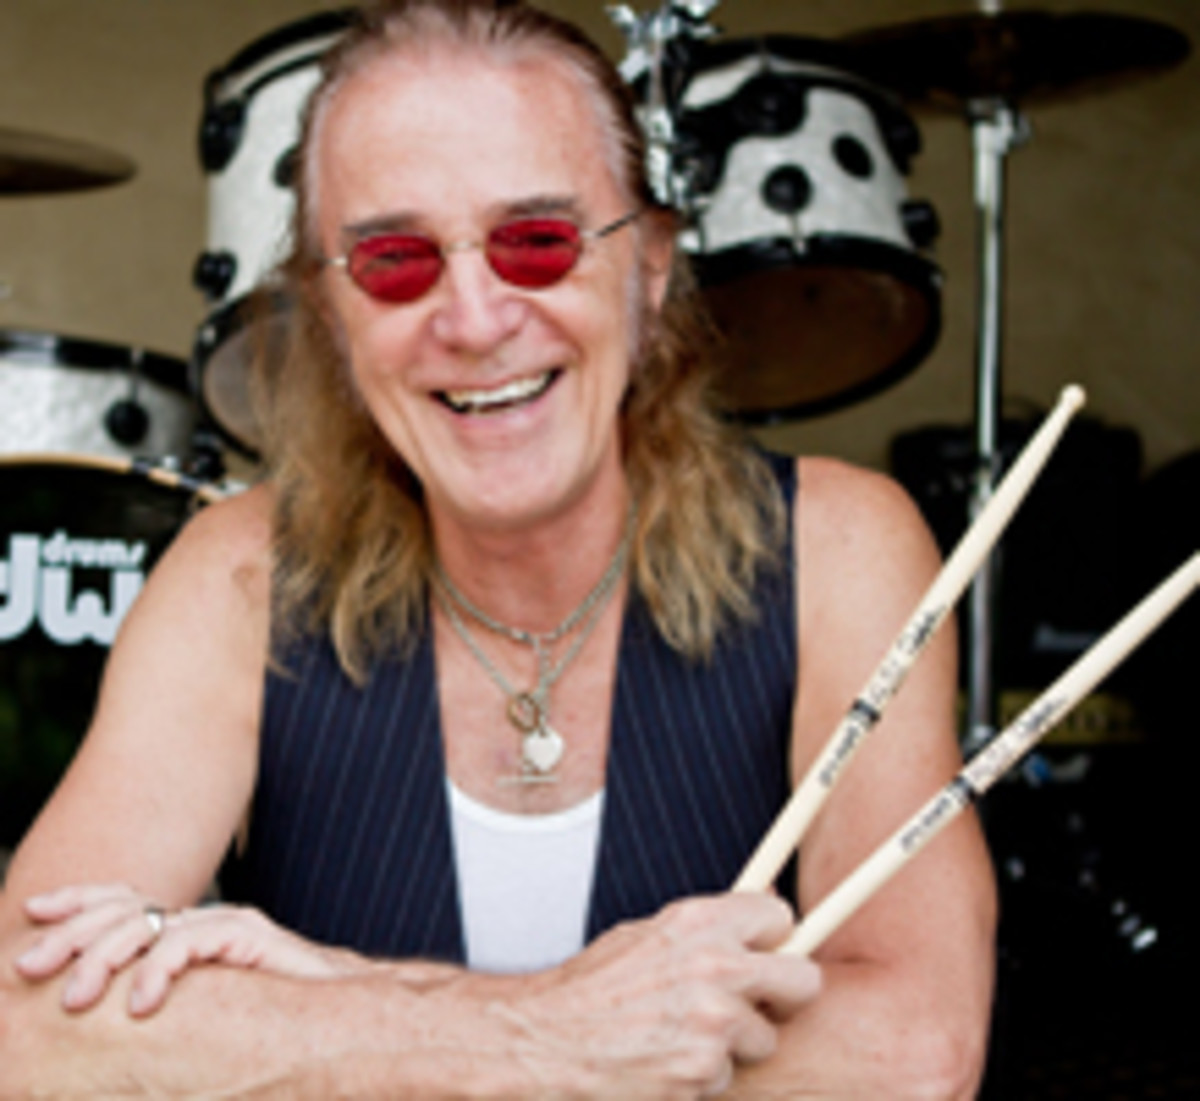 Foghat drummer Roger Earl photo by Kenny Janosik